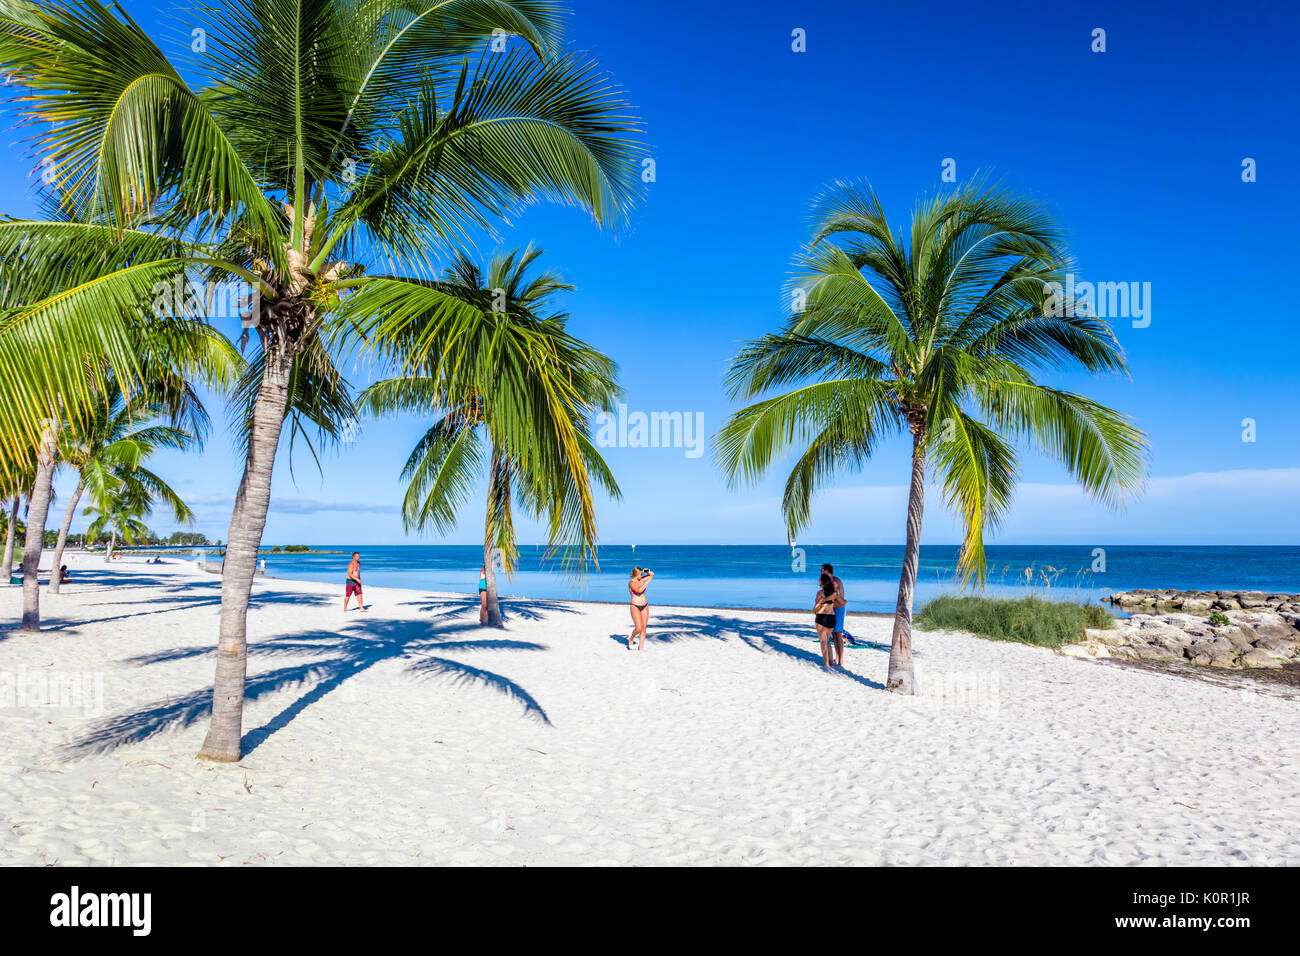 Palm trees and people on sandy Smathers Beach on the Atlantic Ocean in Key West Florida on a blue sky summer day - Stock Image